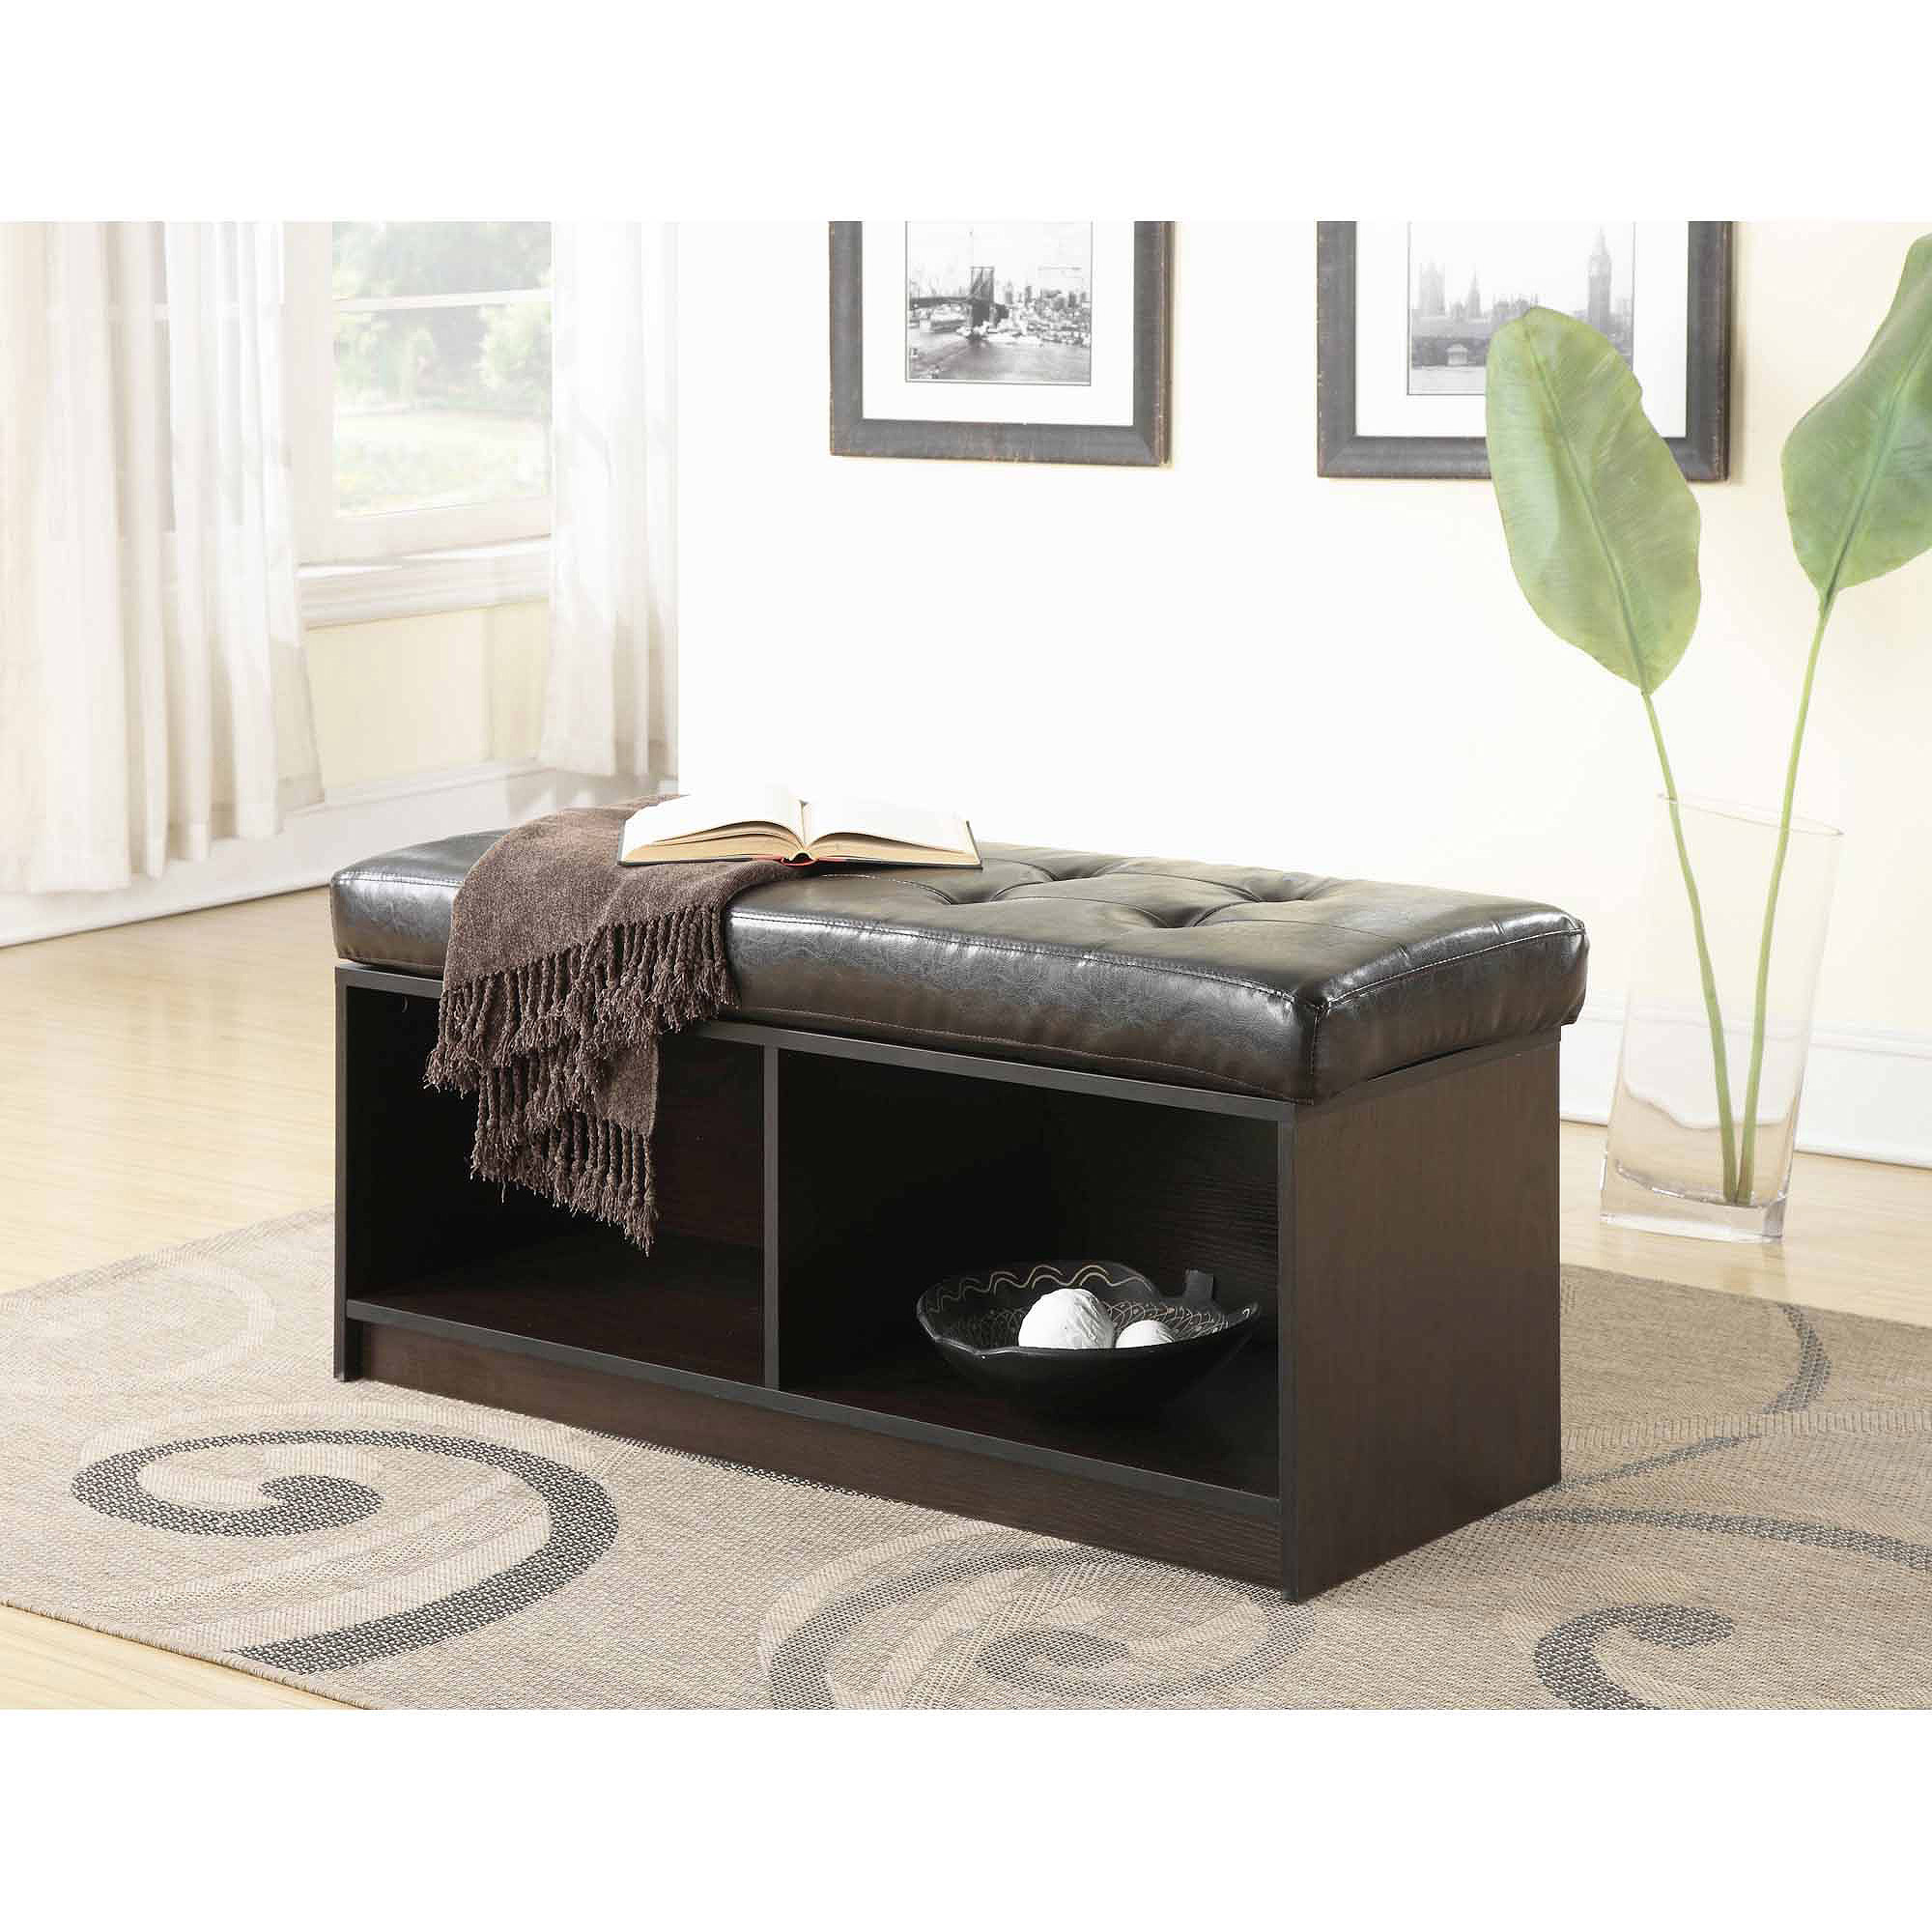 Storage Benches For Living Room Convenience Concepts Designs4comfort Broadmoor Entryway Faux